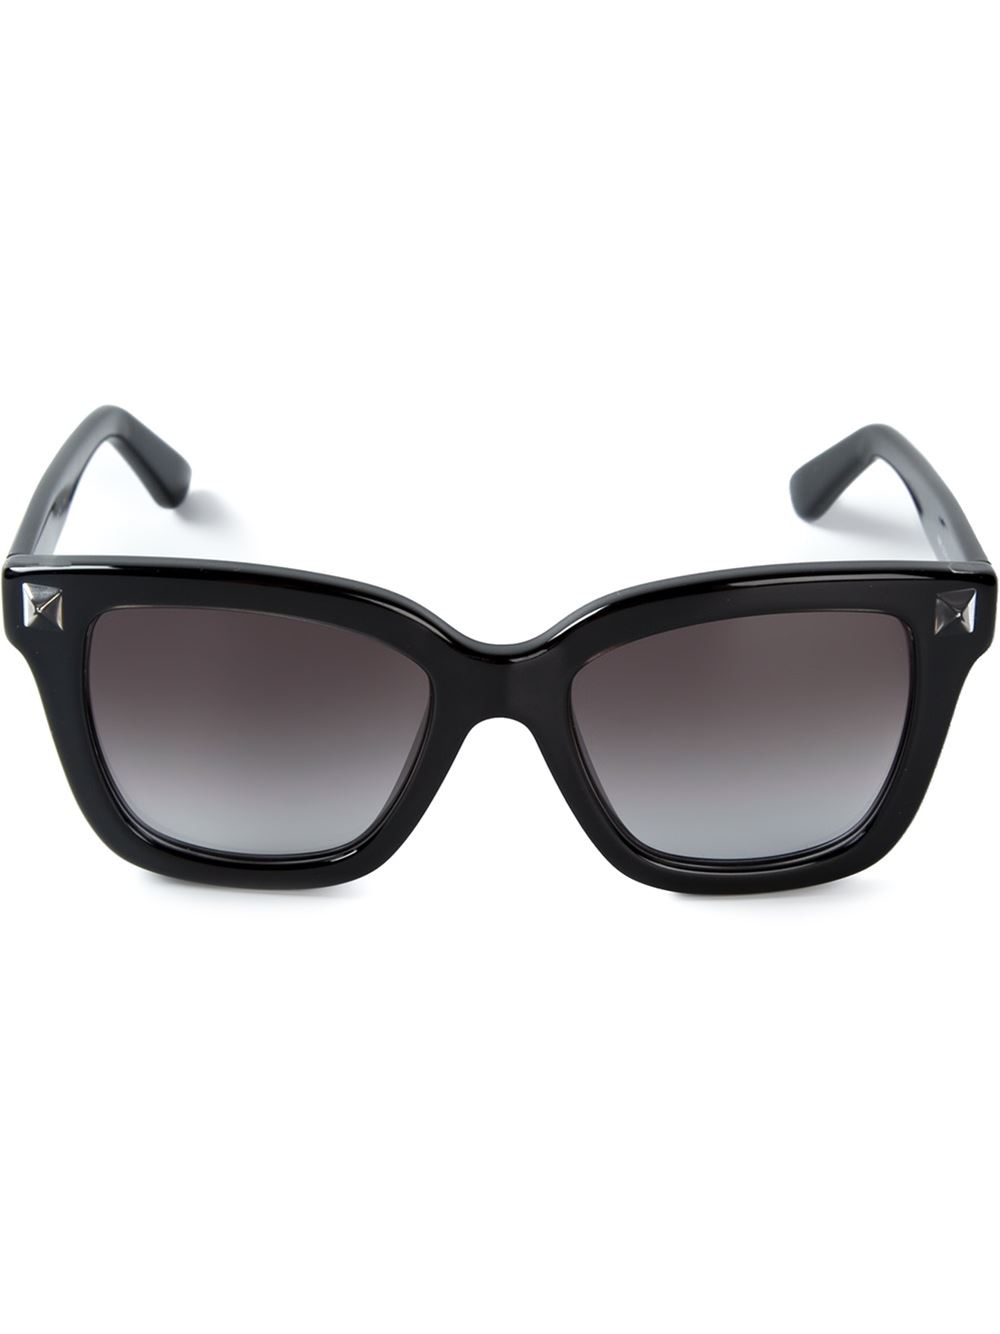 valentino-black-rockstud-sunglasses-product-1-27563542-3-573488894-normal.jpeg